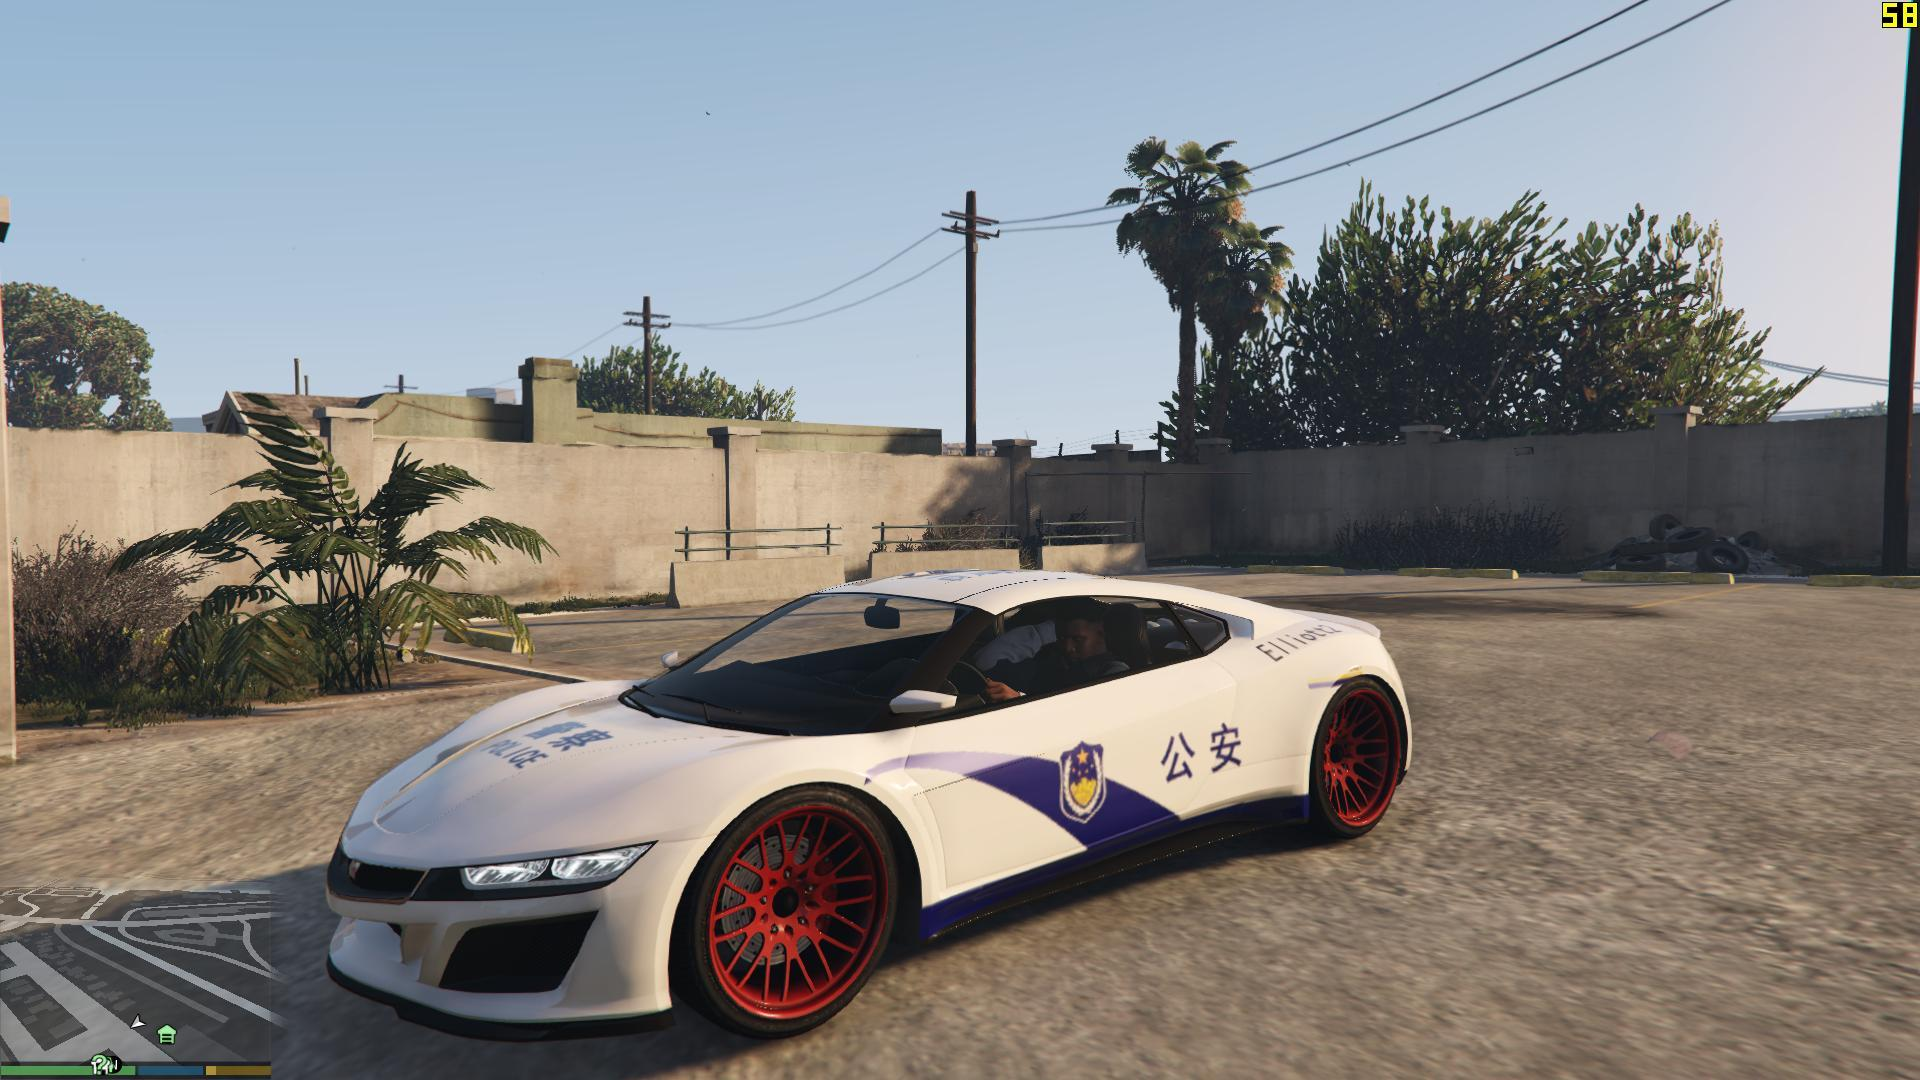 Menyoo Zombie Cars together with File Ballasmember GTAV further Coche Gallivanter Baller as well Elegy Retro Custom as well Passt Dwayne Johnson Noch Fast And Furious 8 86625. on gta 5 baller